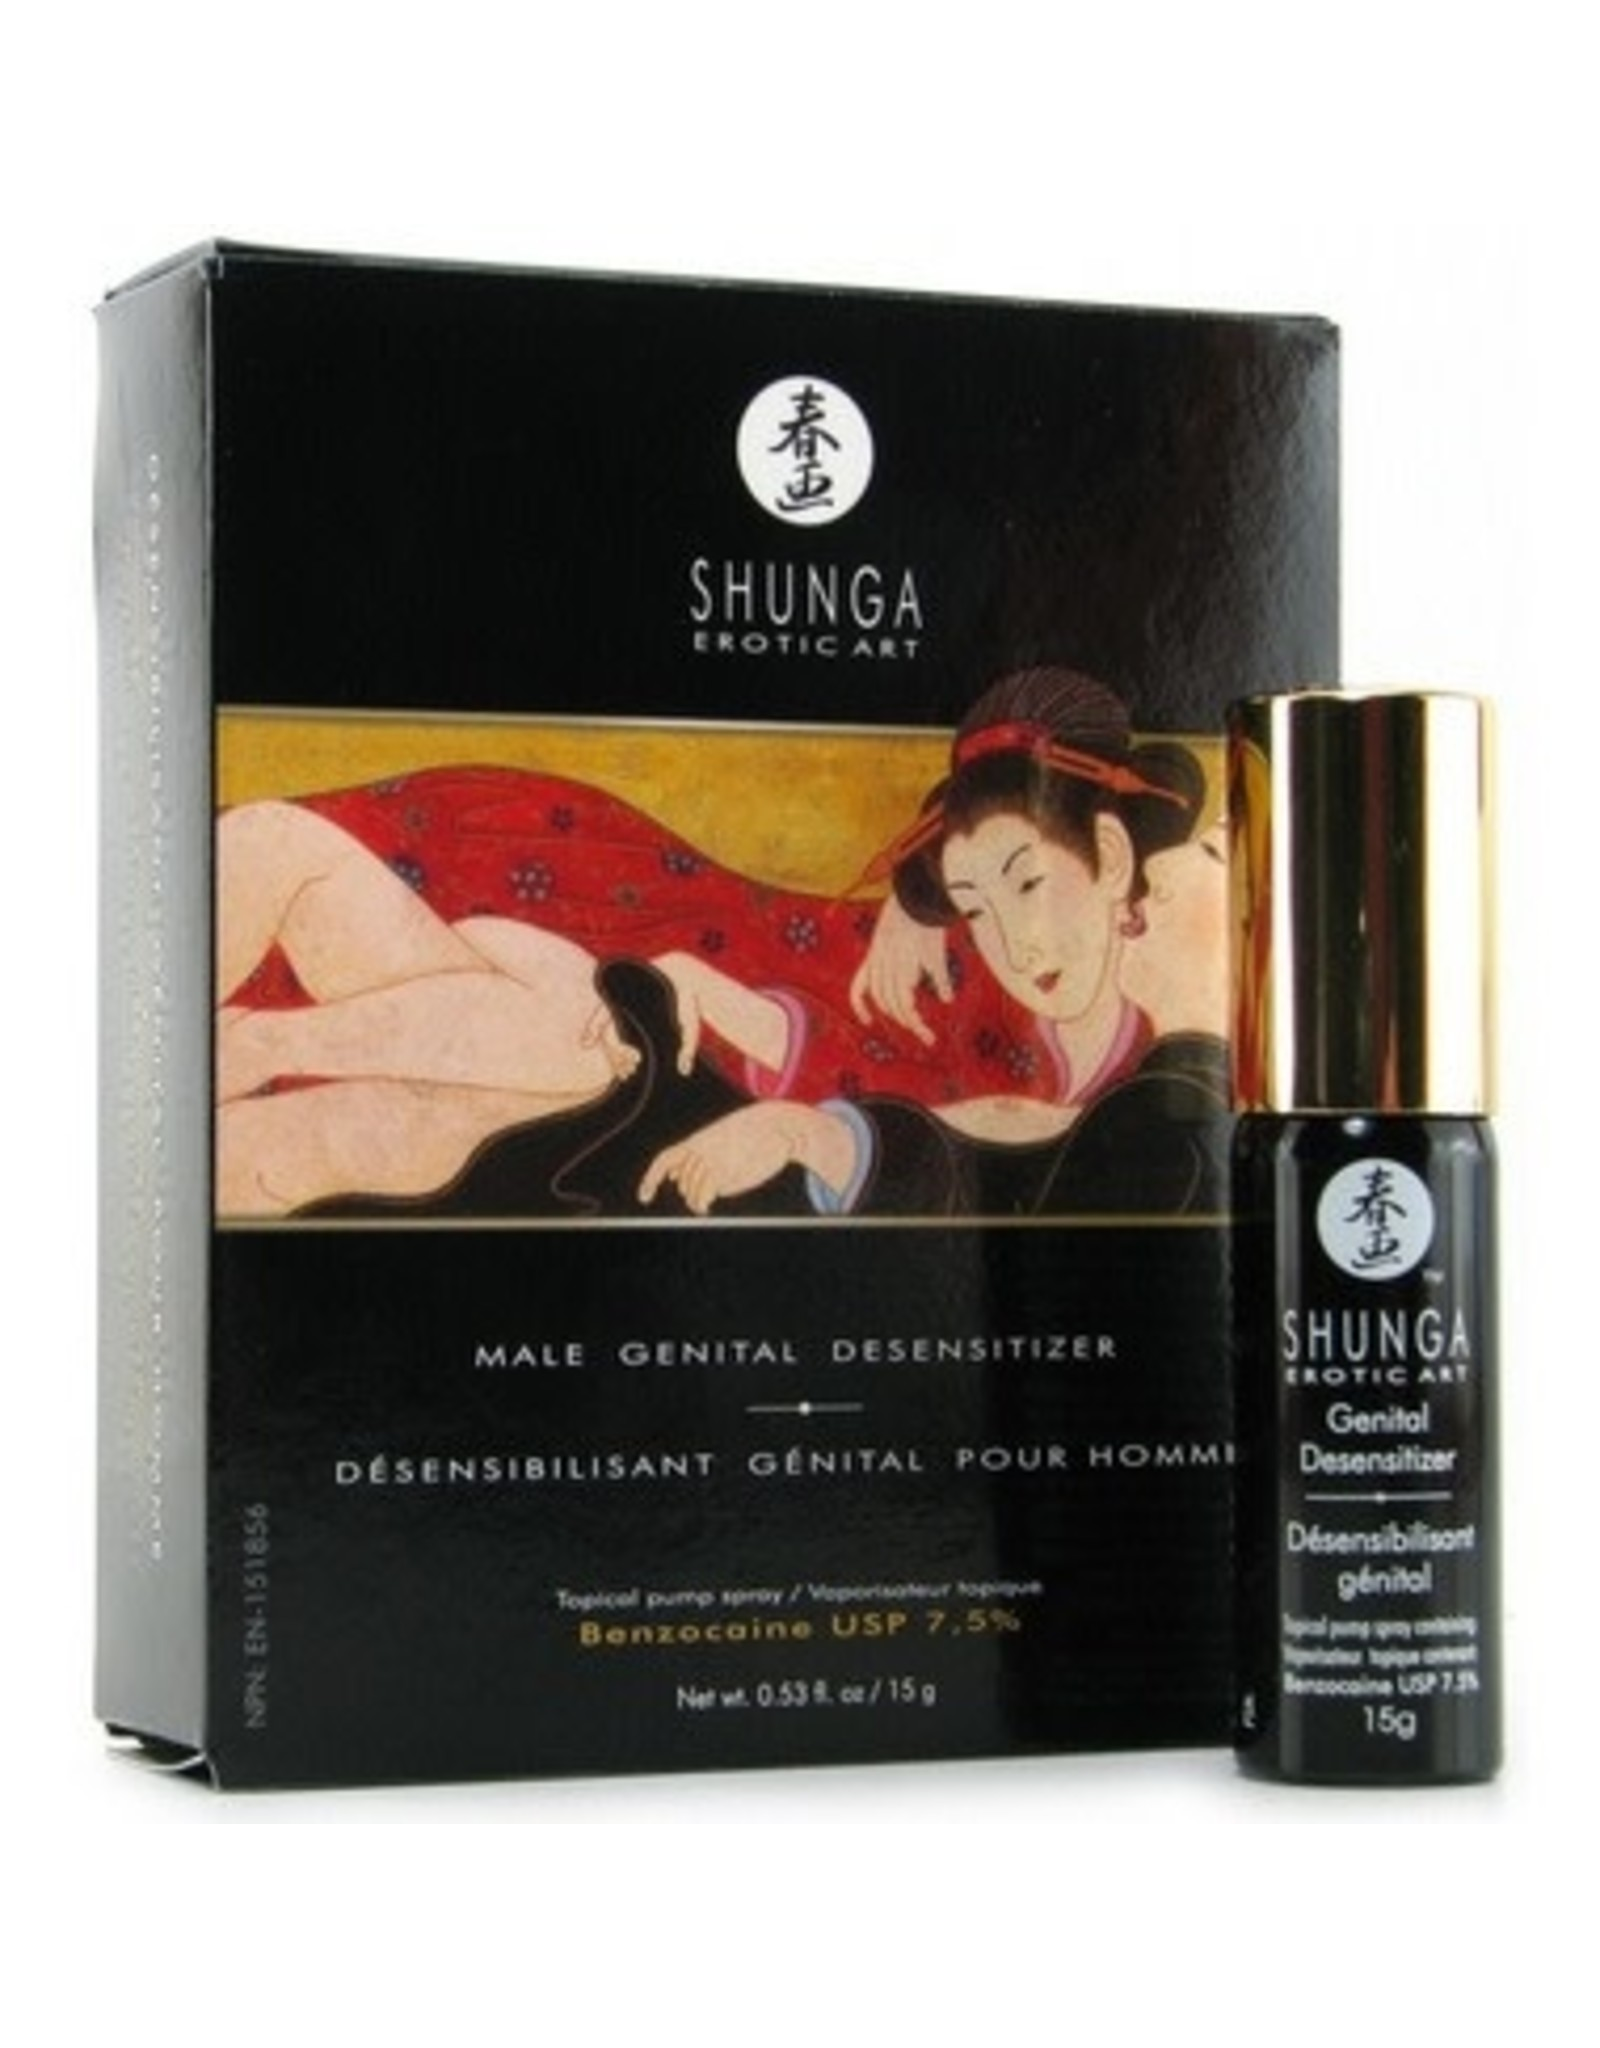 Shunga Shunga Male Genital Desensitizer